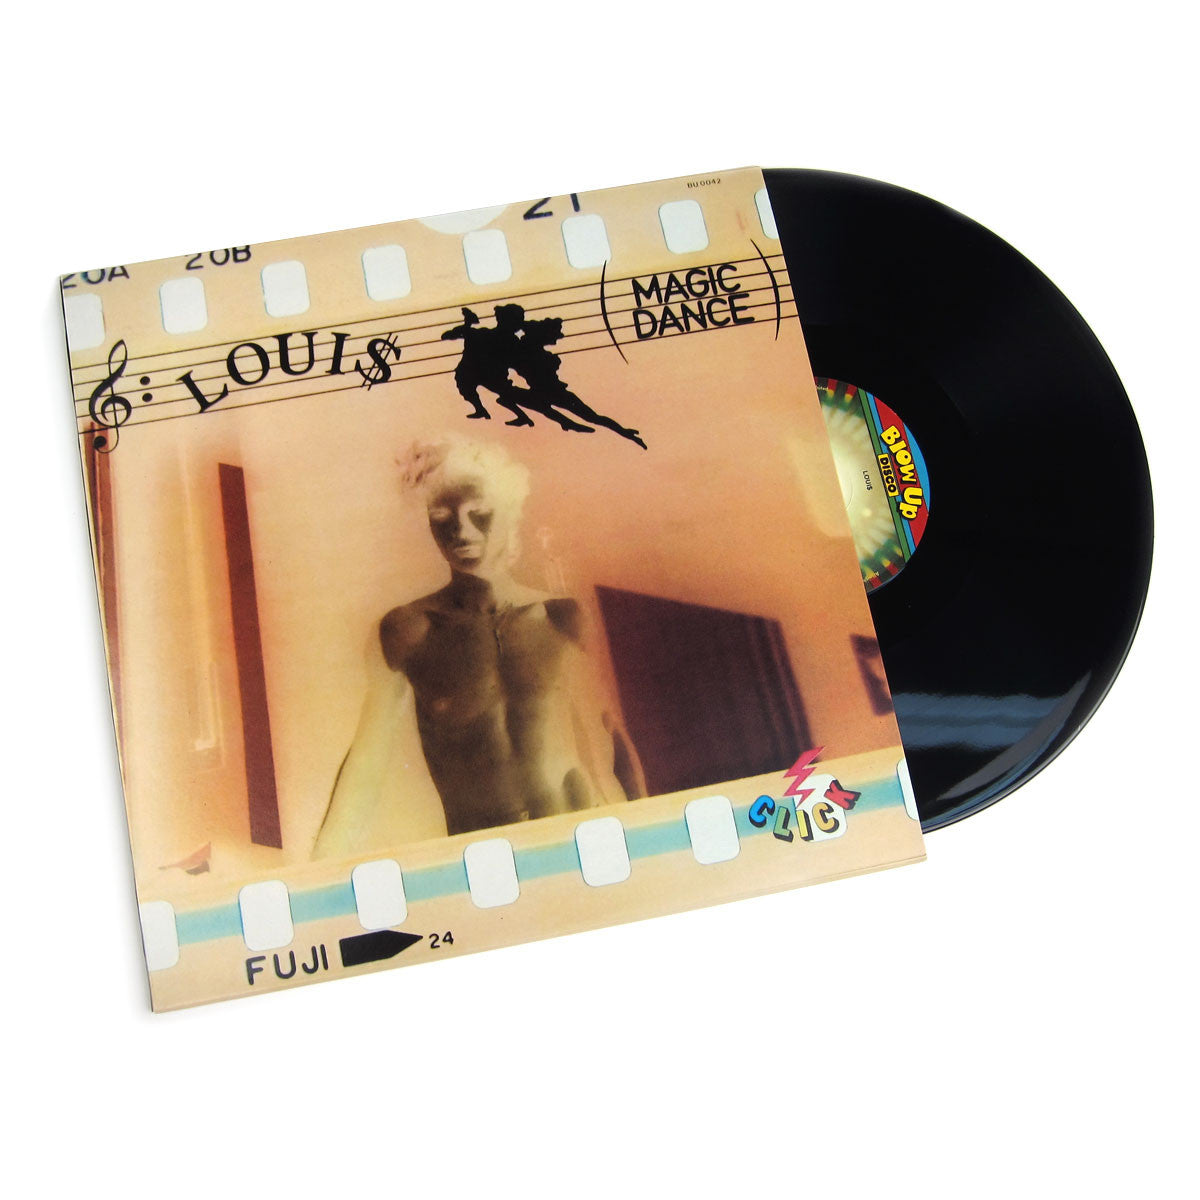 Loui$: Magic Dance Vinyl 12""